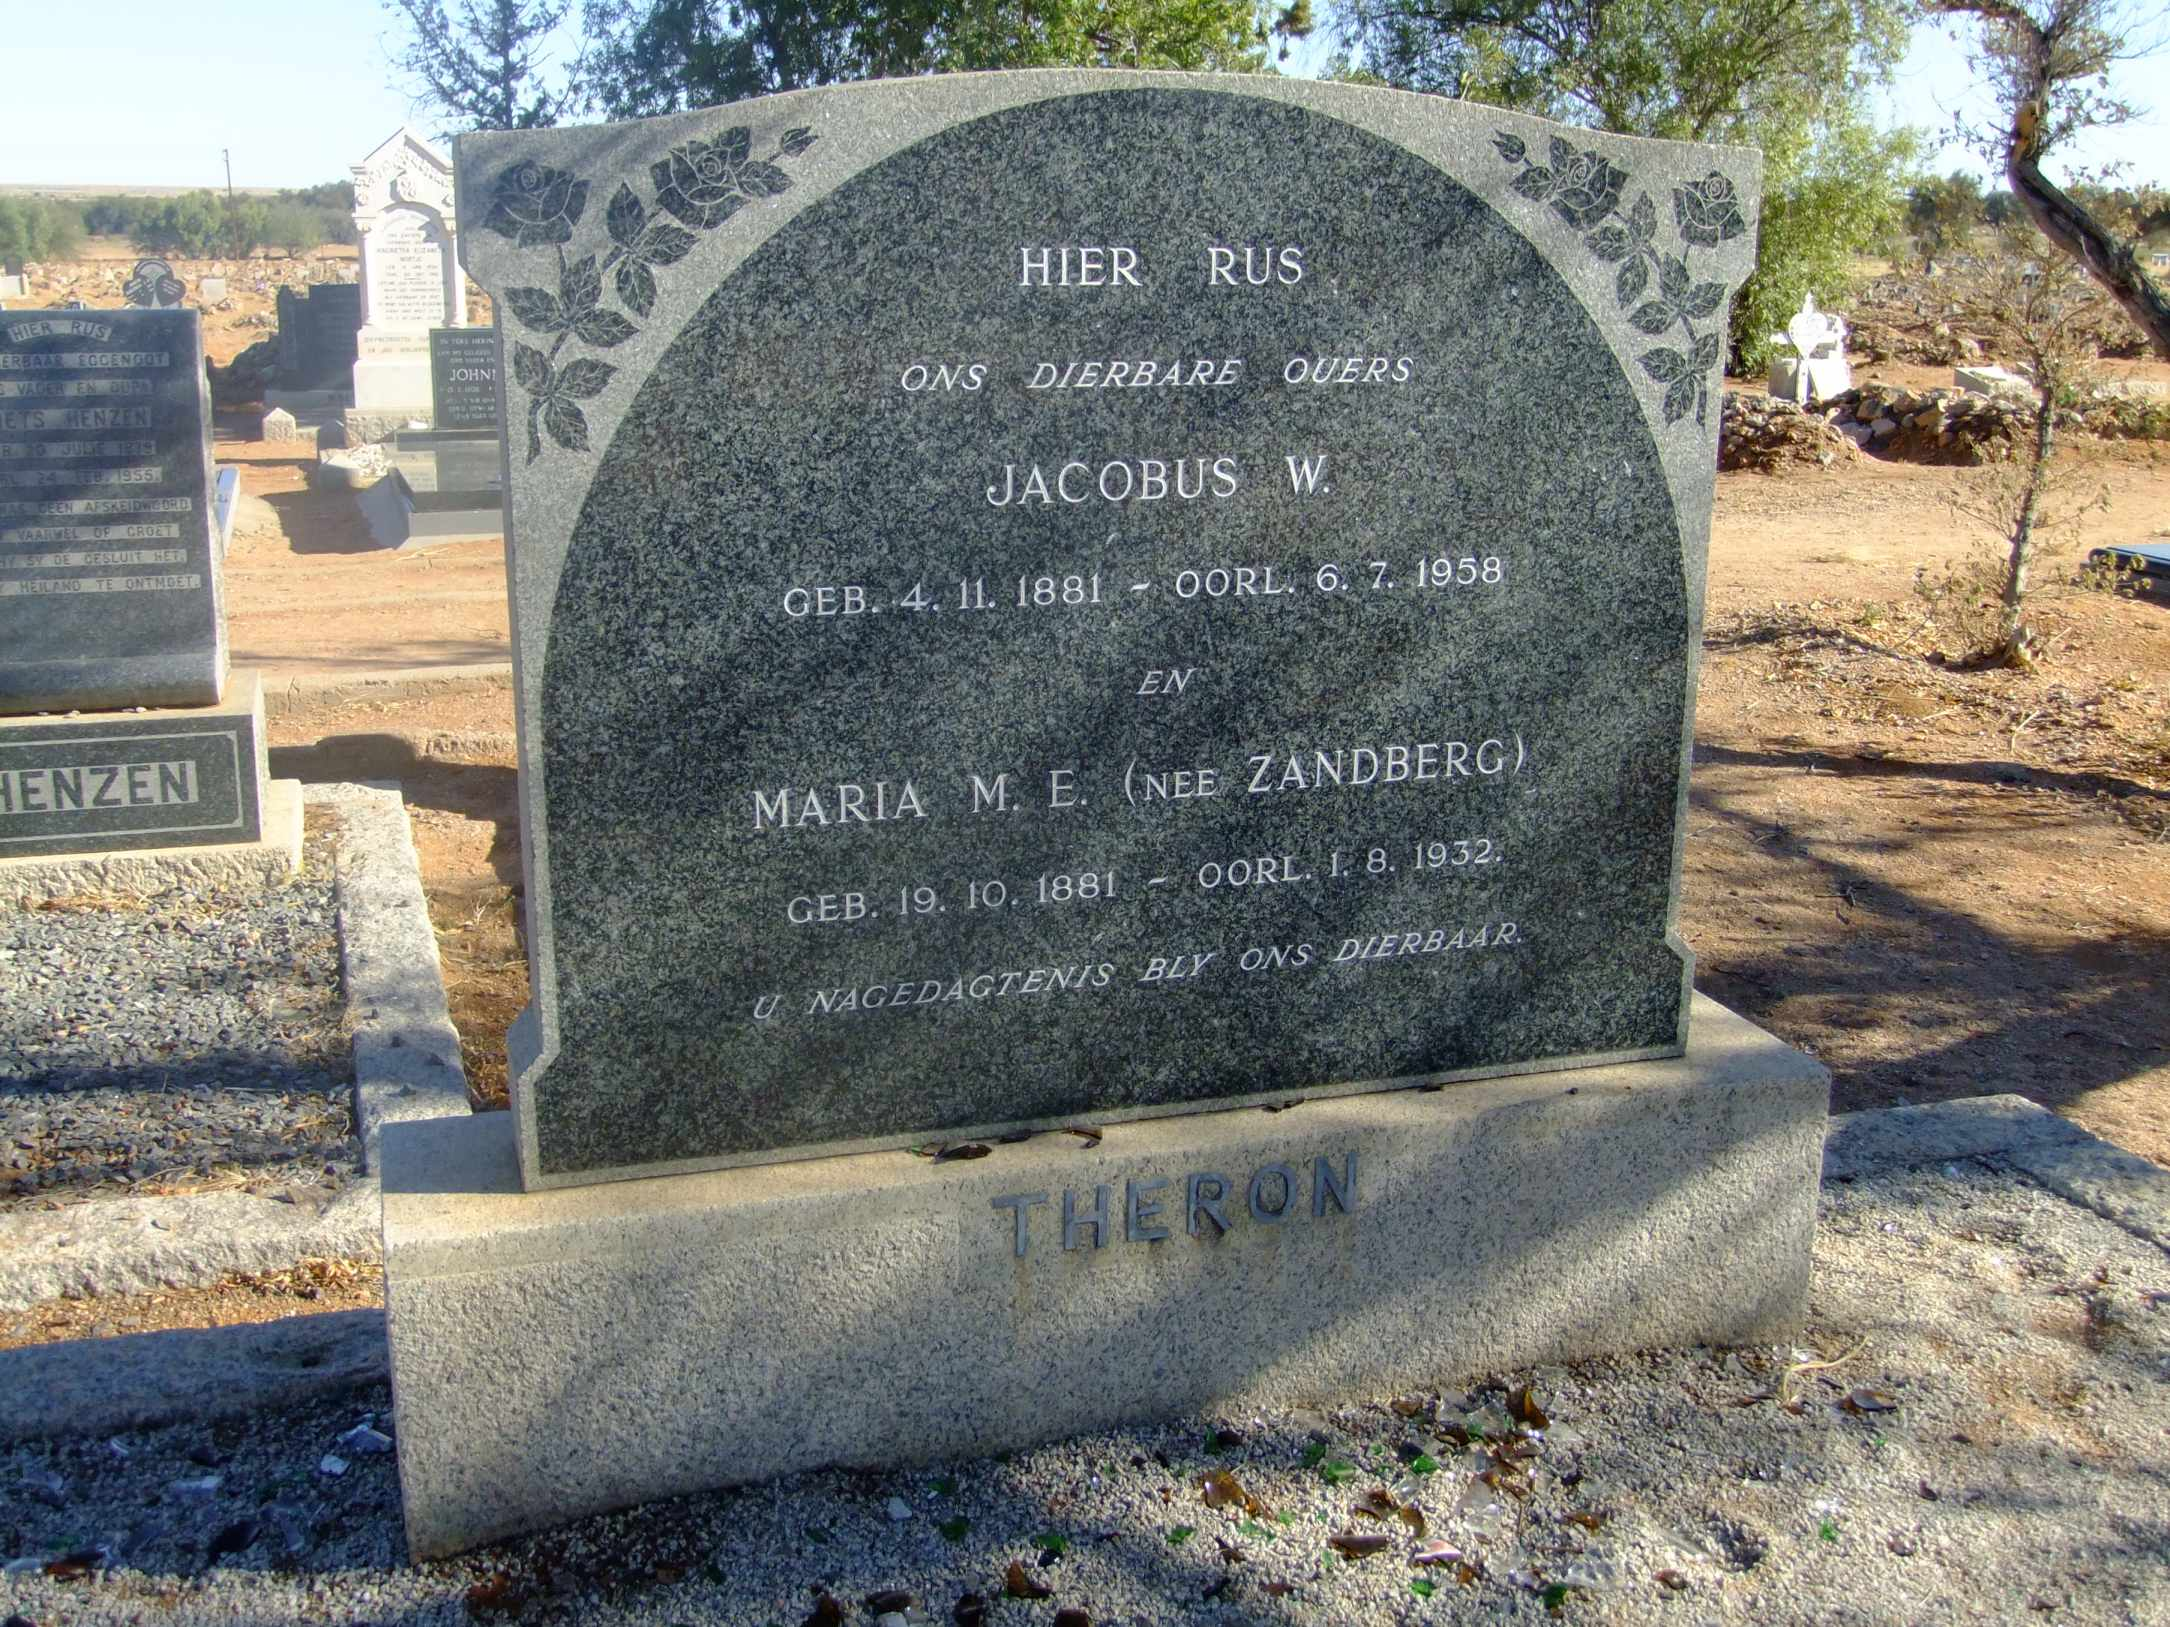 Theron, Jacobus born 04 November 1881 died 06 July 1958 and Maria Zandberg born 19 October 1881 died 01 August 1932